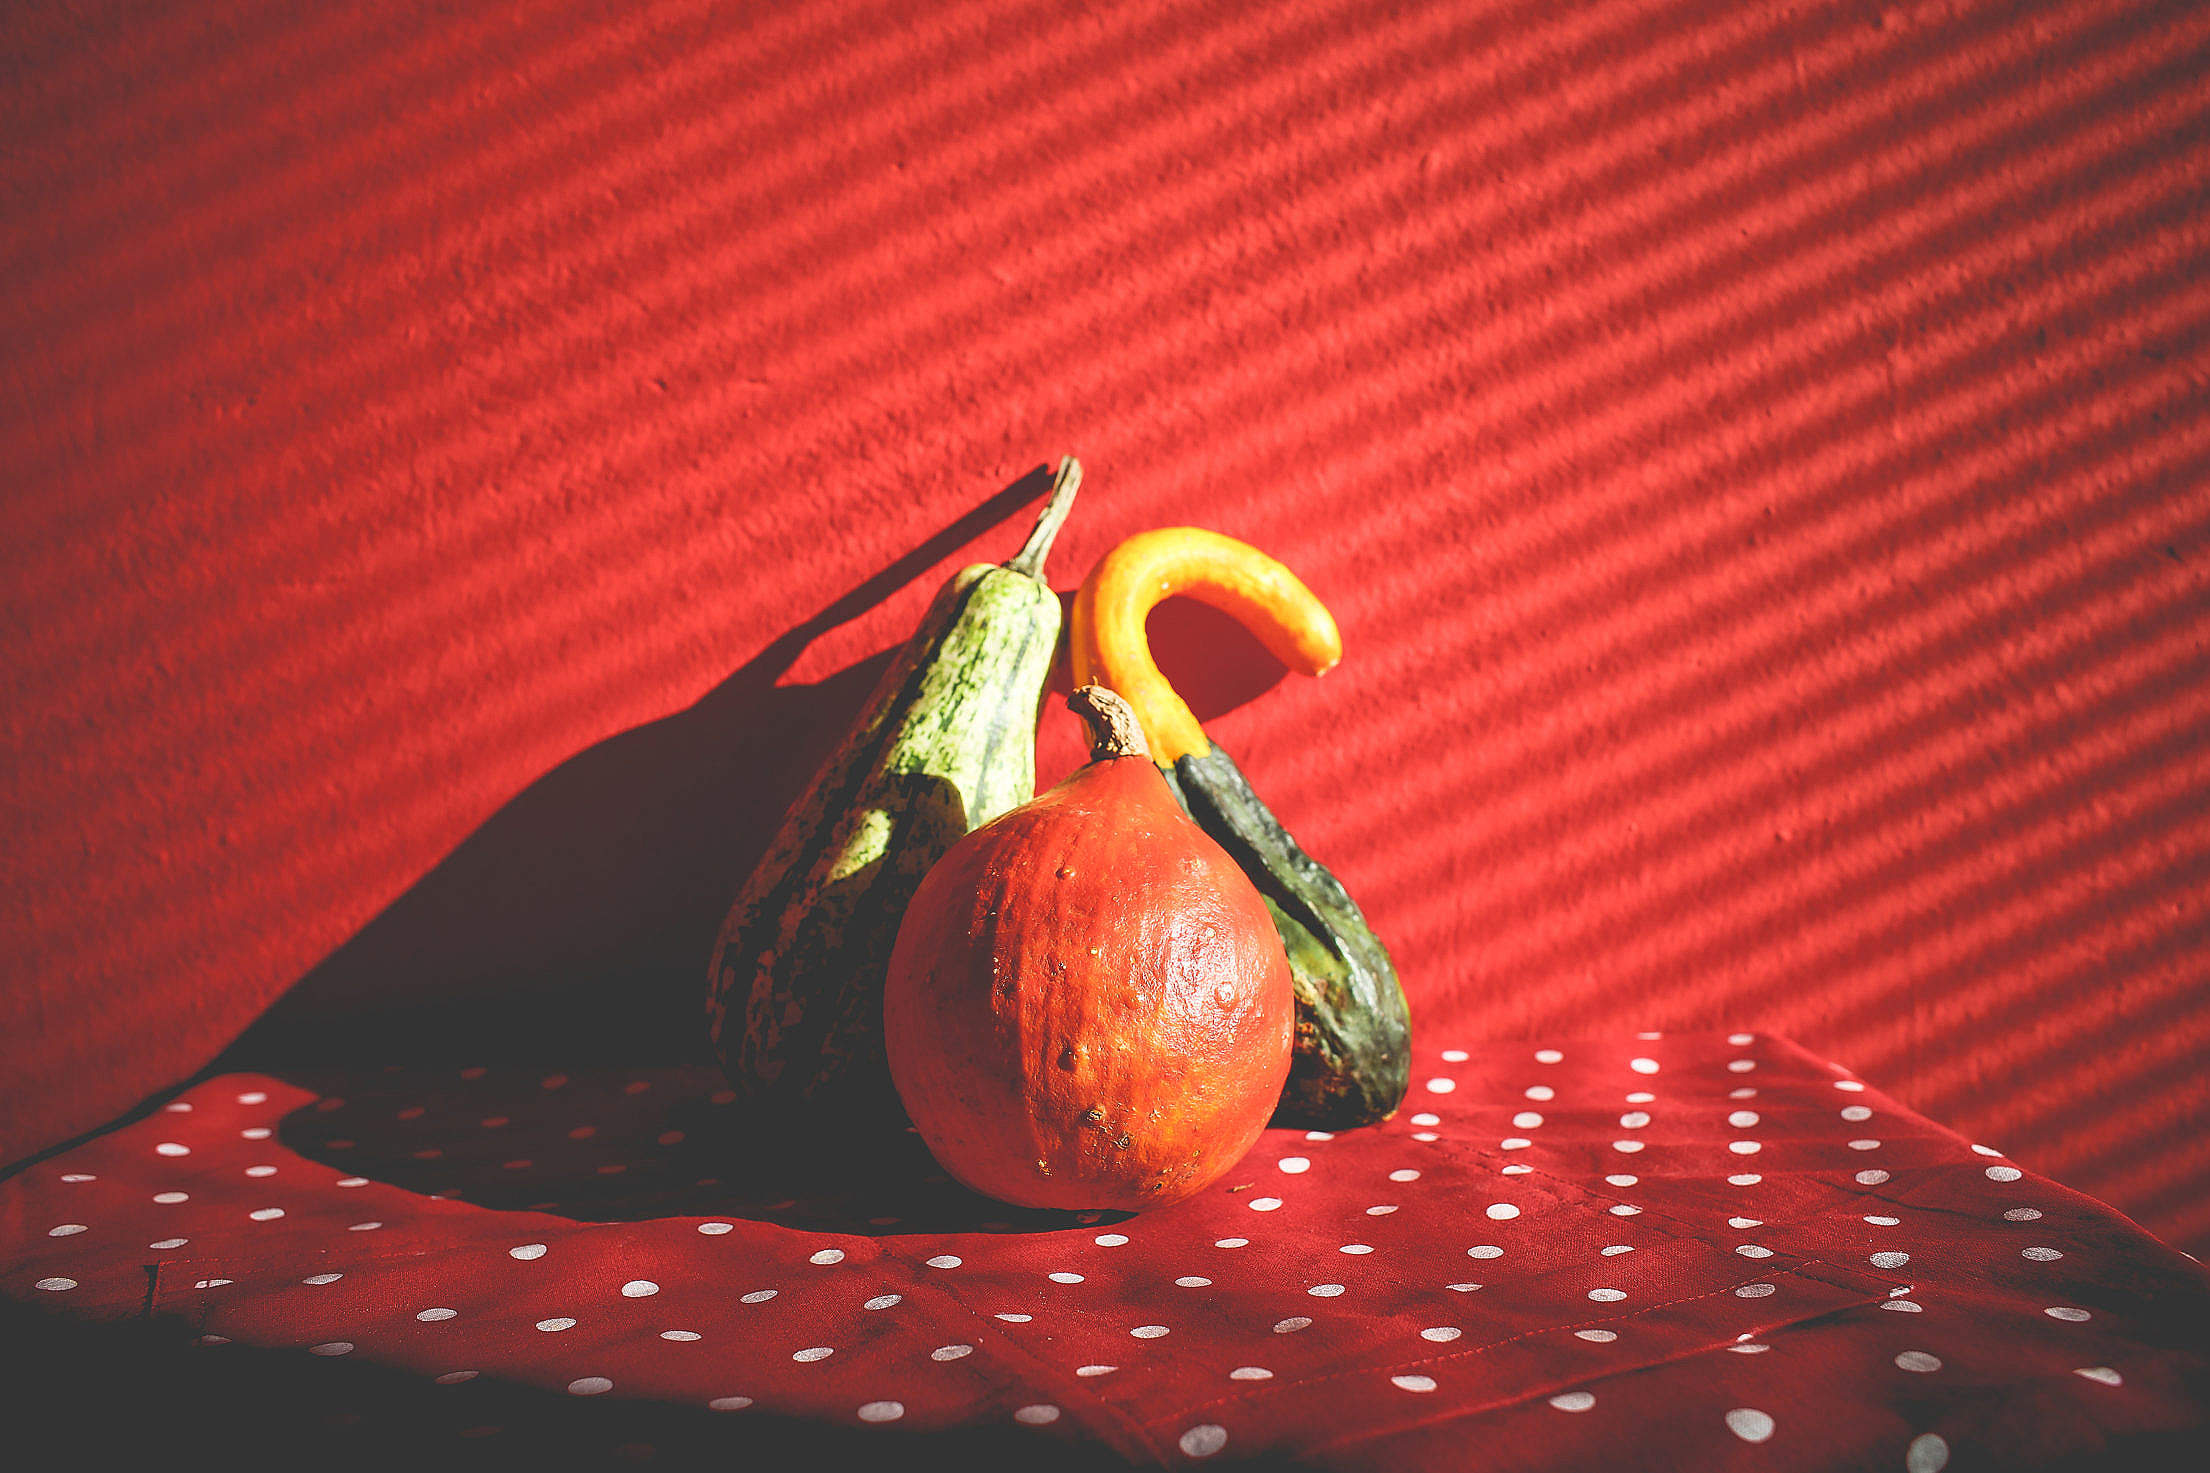 Decorative Pumpkins in Red Free Stock Photo